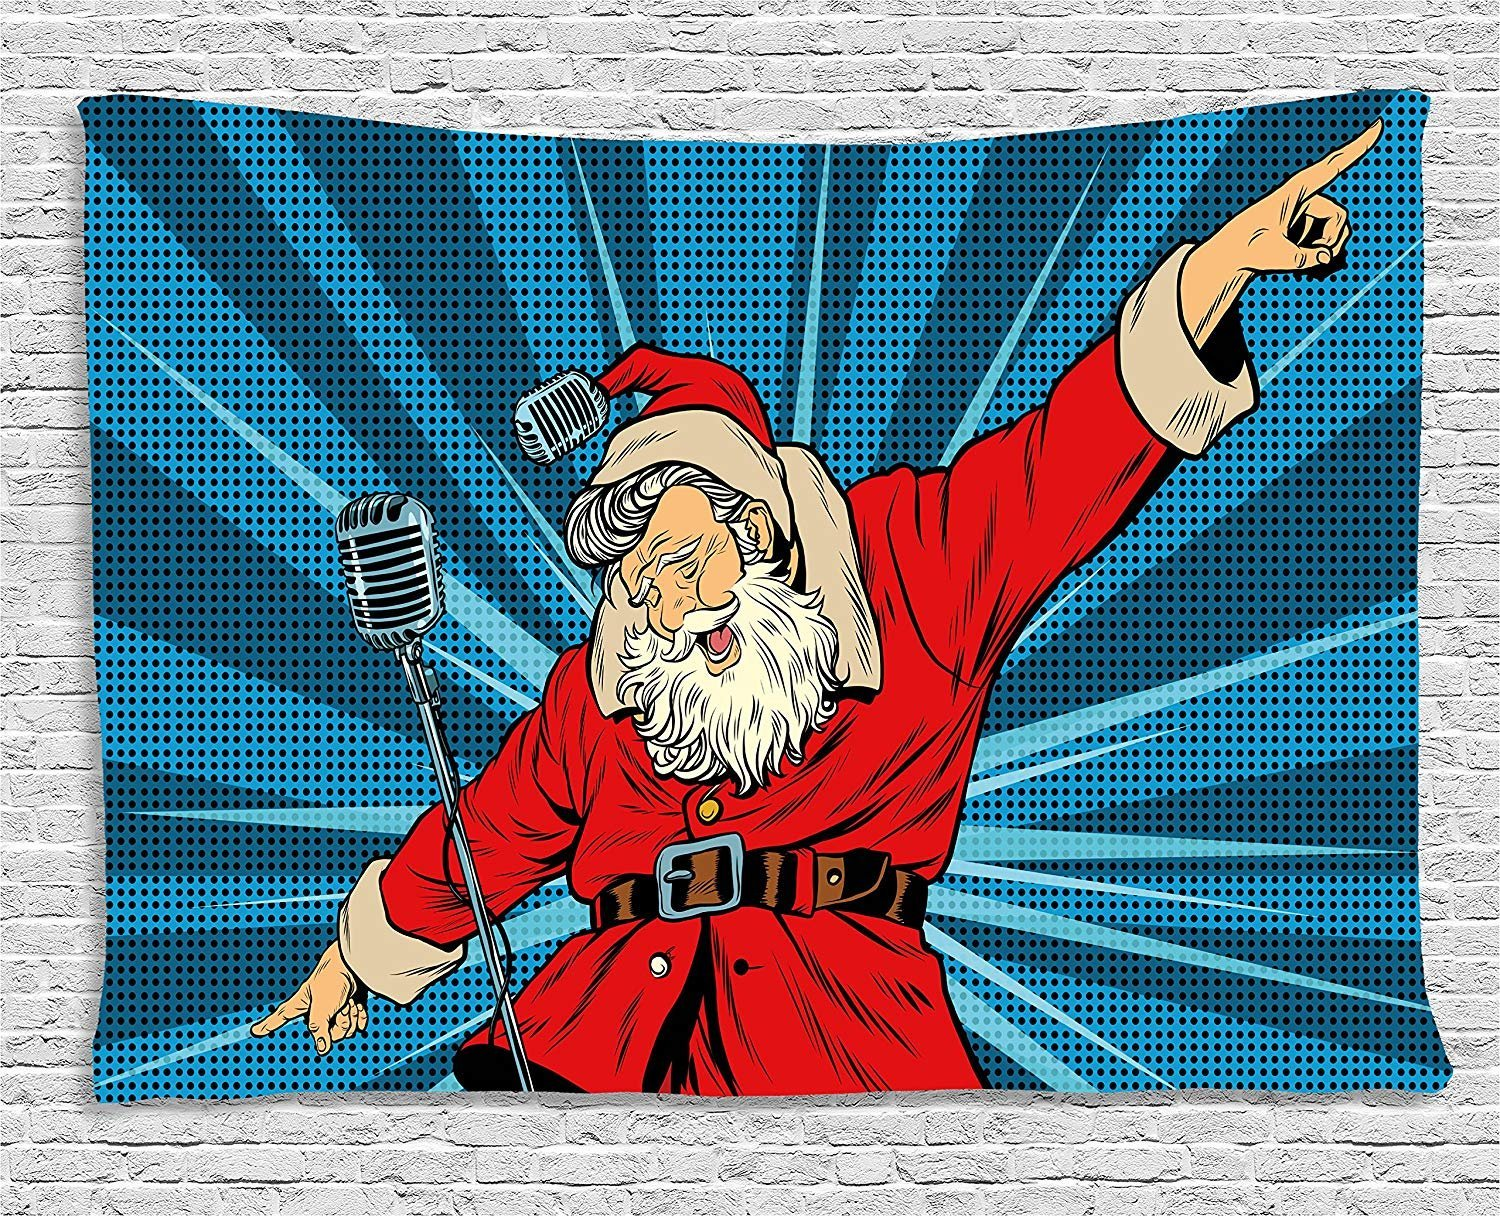 XHFITCLtd Popstar Party Tapestry, Pop Art Style Santa Claus Superstar Singer on Stage with Retro Microphone, Wall Hanging for Bedroom Living Room Dorm, 80 W X 60 L Inches, Blue Red Tan